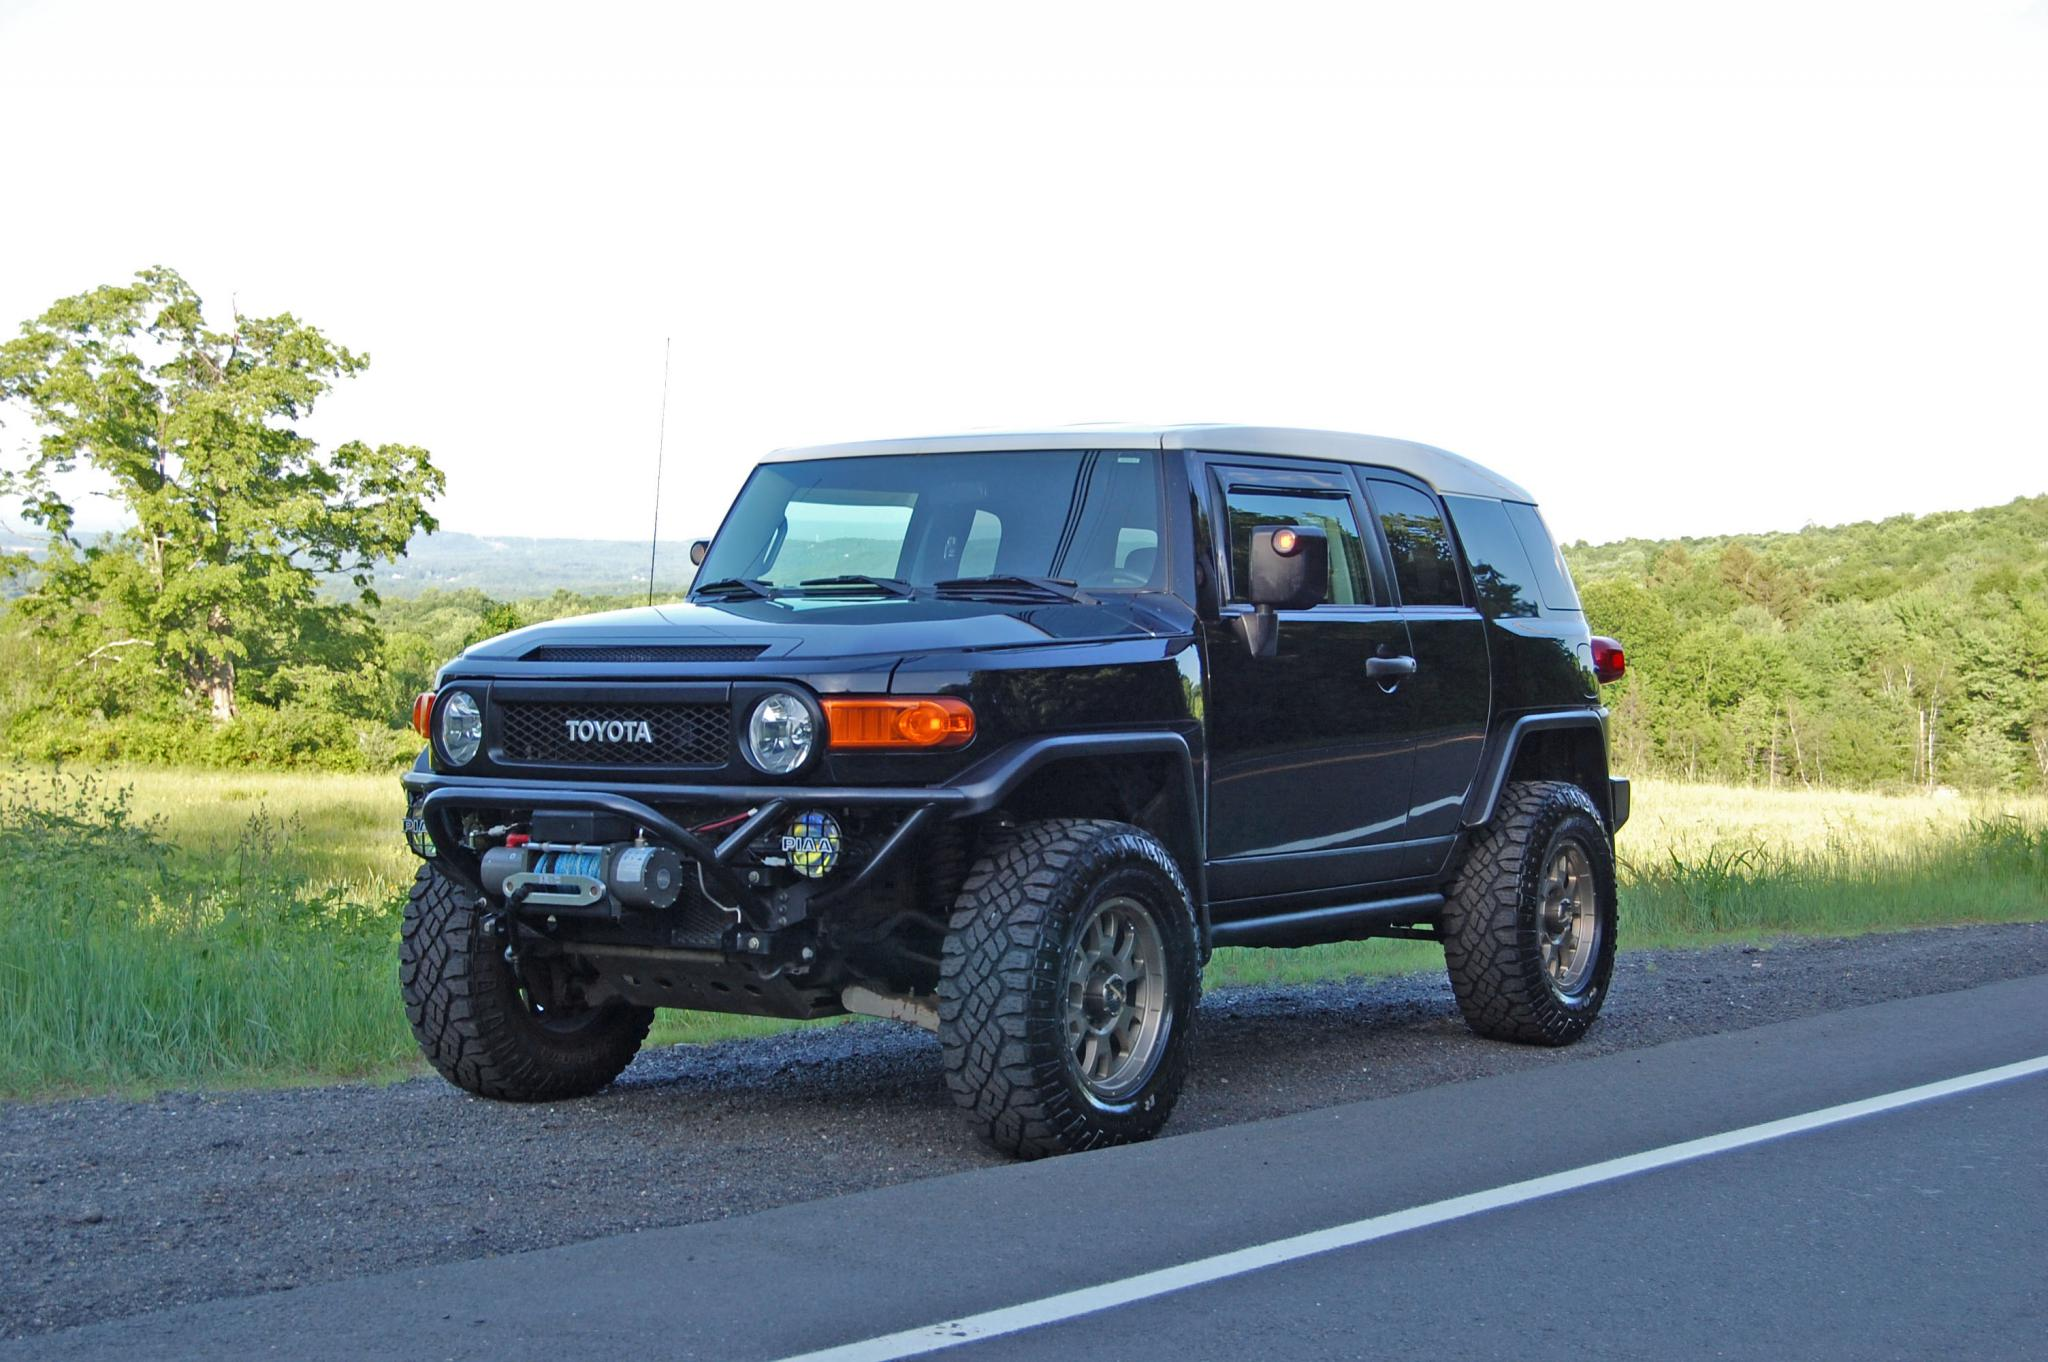 Used Fj Cruiser >> 2007 fj cruiser. 6 speed. Icon longtravel. Metal-tech. - Toyota FJ Cruiser Forum